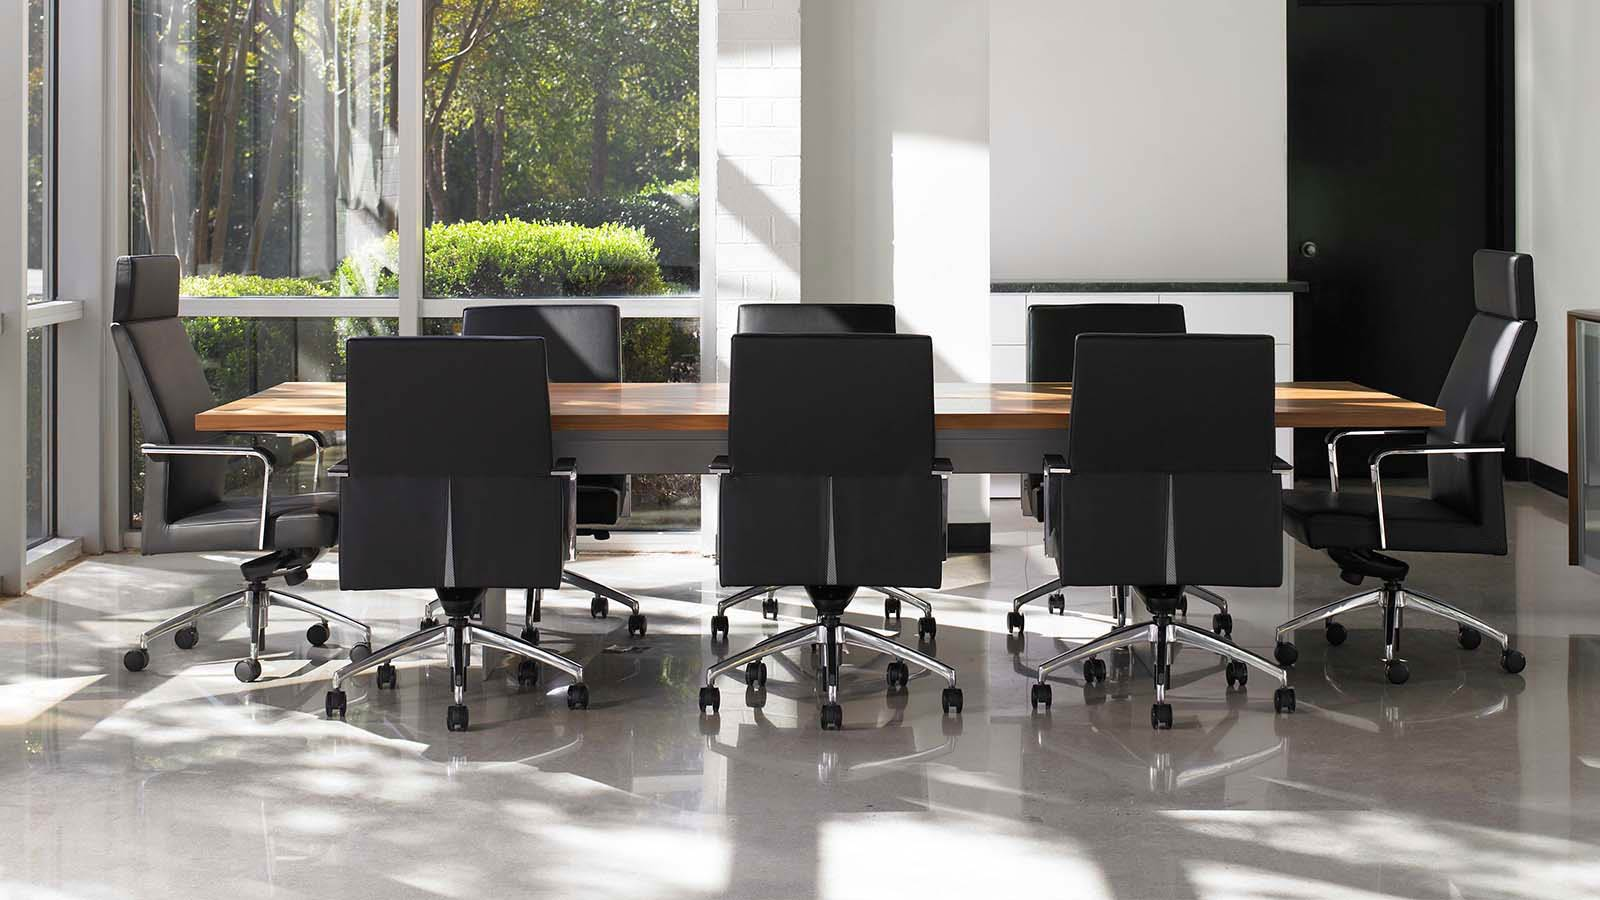 Black corporate chairs inside a meeting room